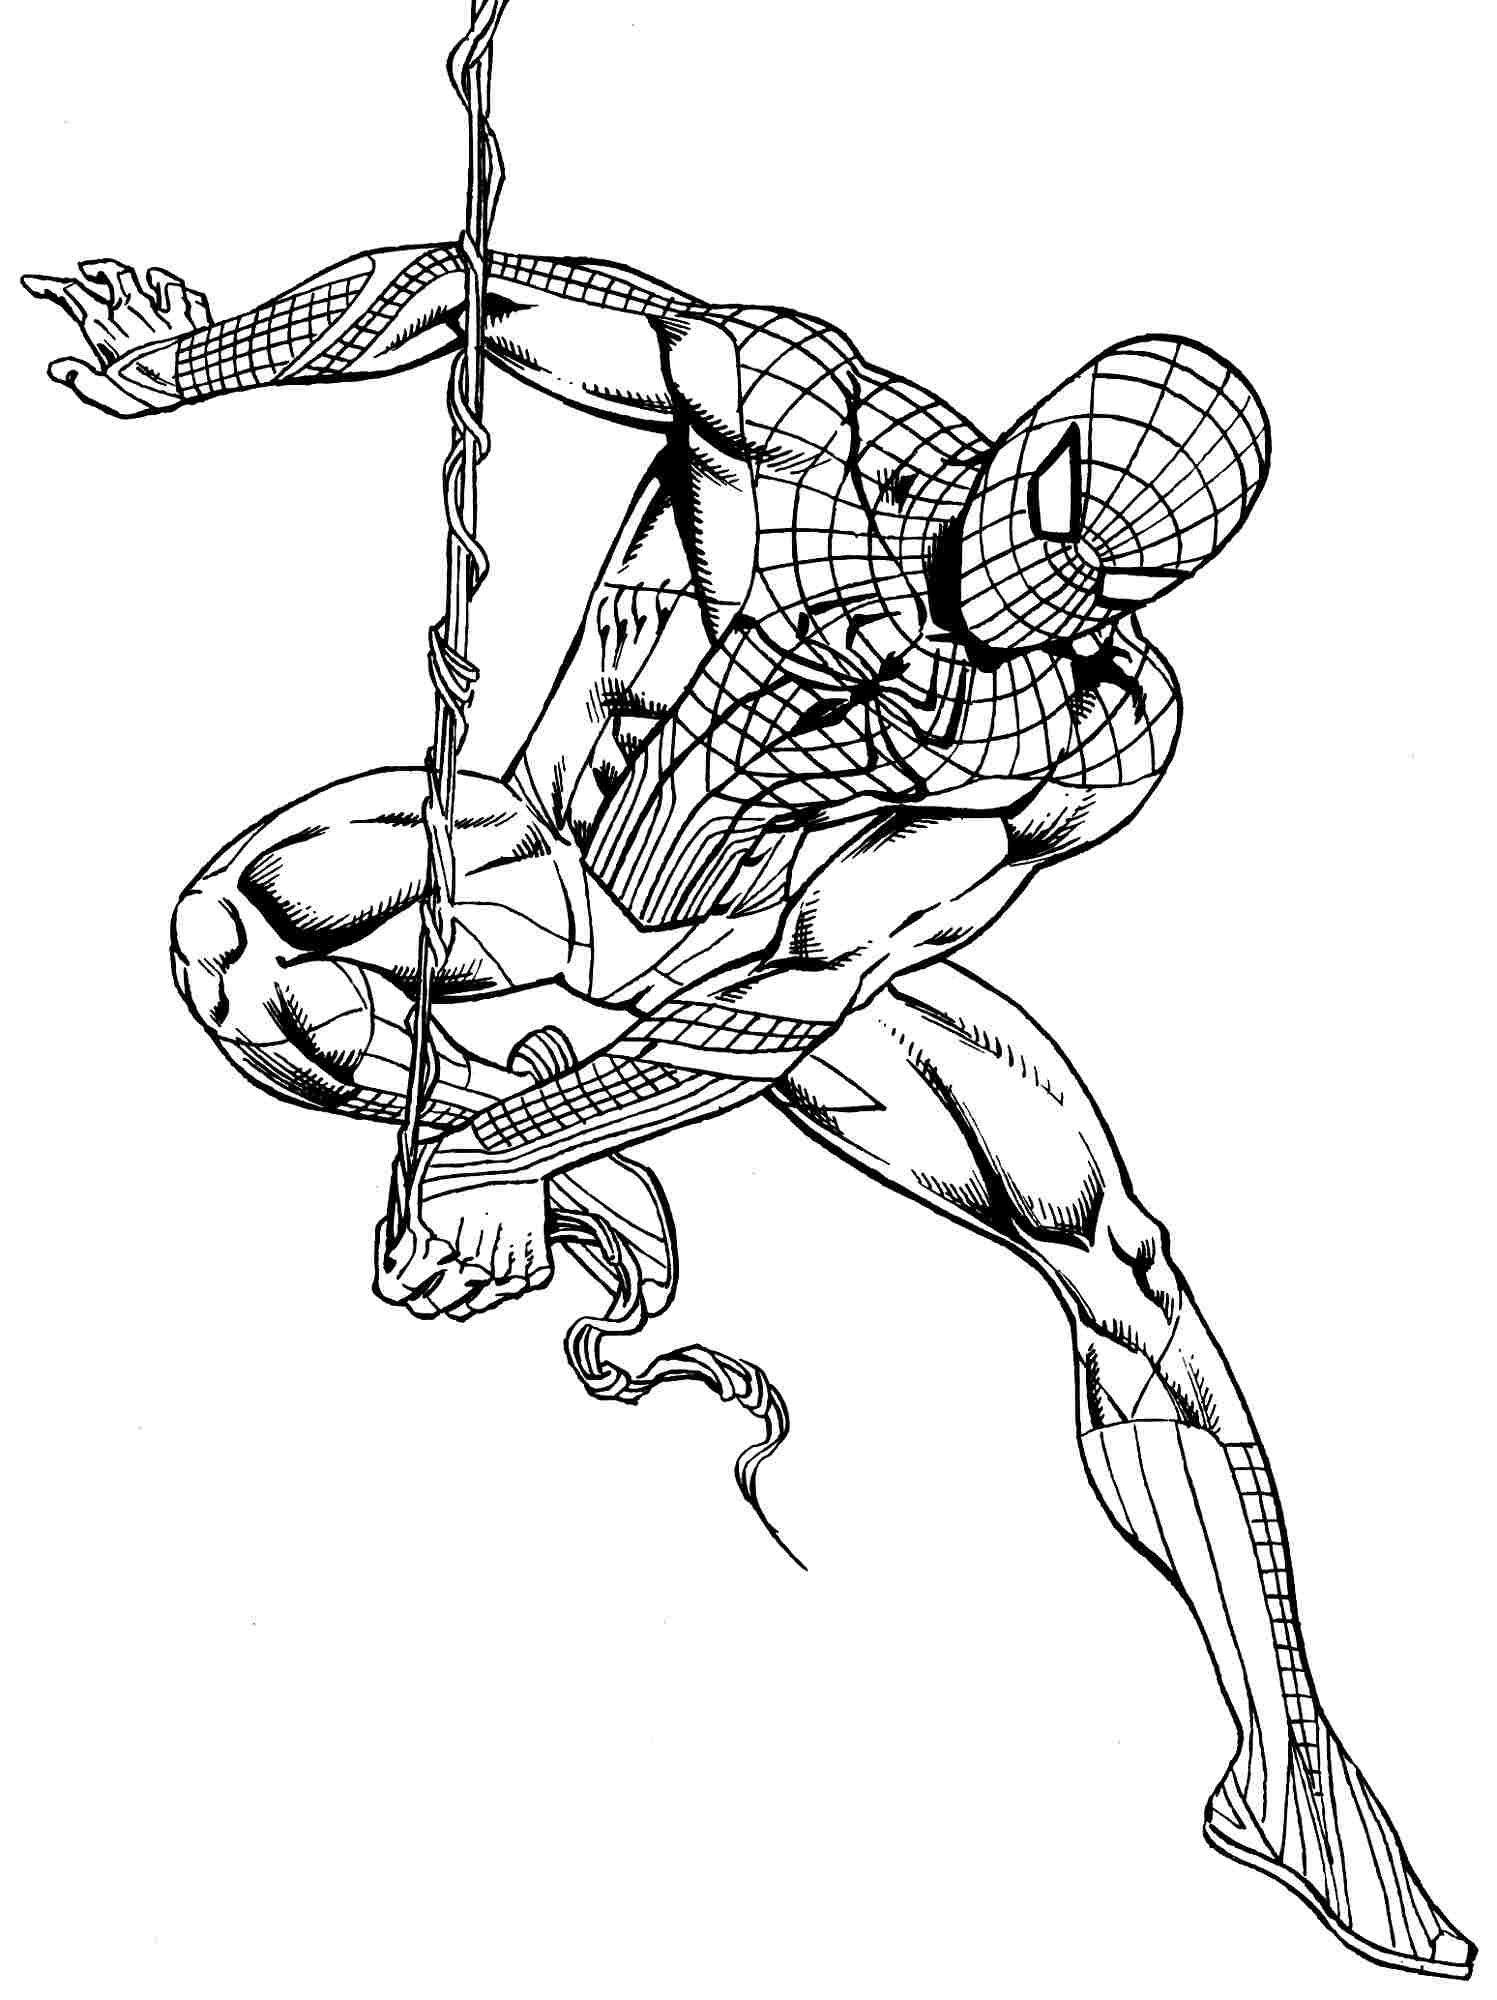 Download or Print the Free Spiderman